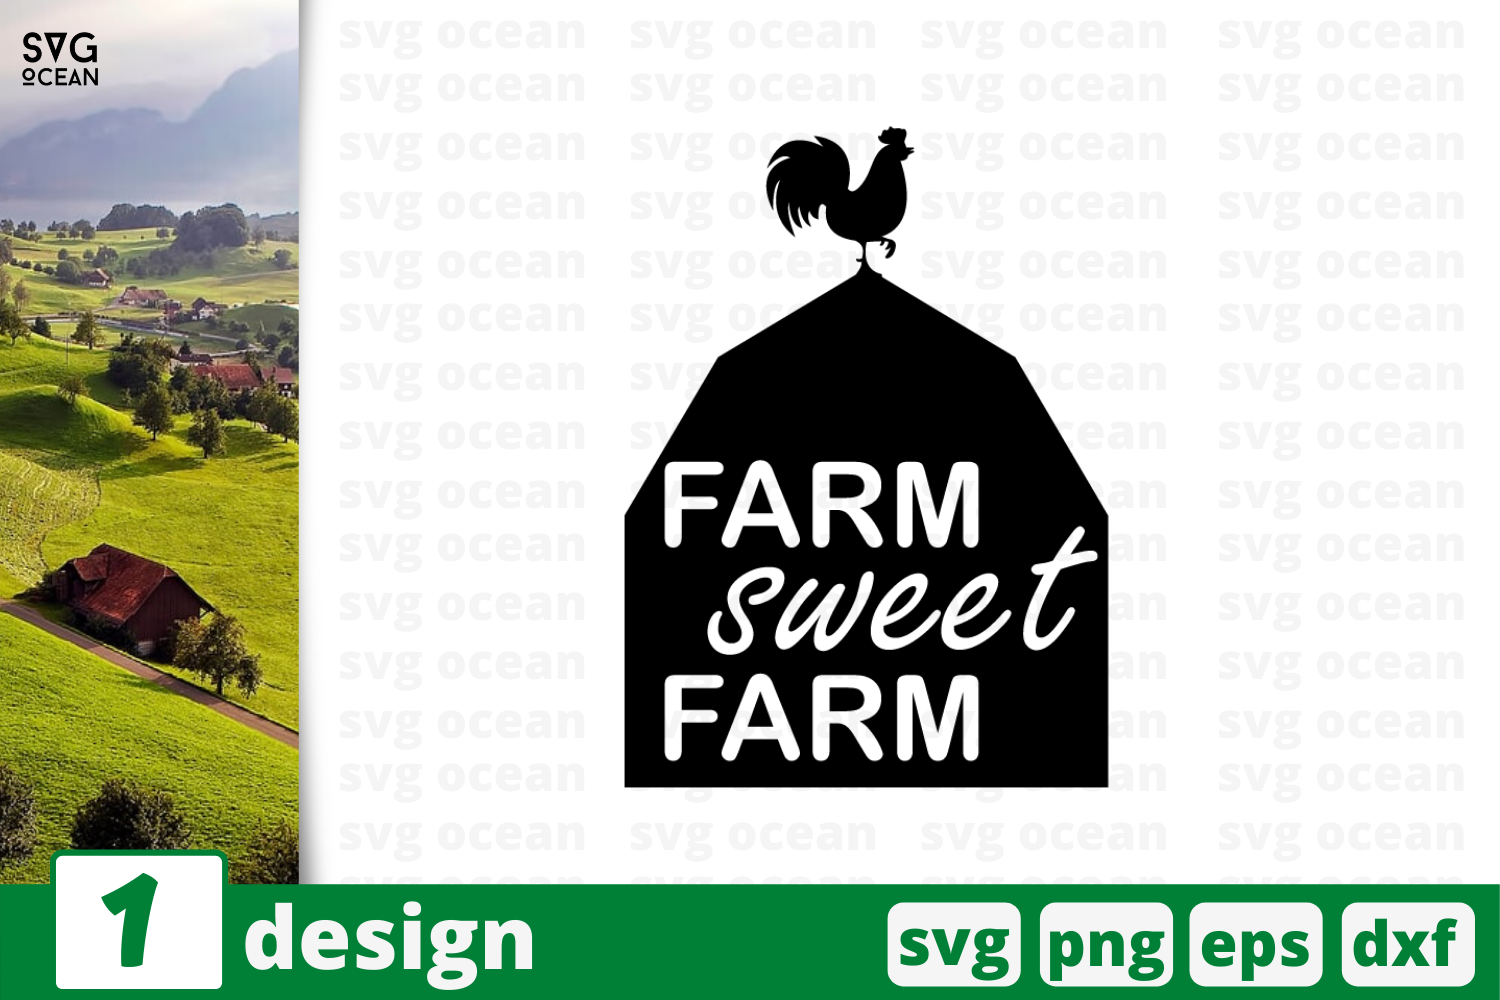 Download Free Farm Sweet Farm Graphic By Svgocean Creative Fabrica for Cricut Explore, Silhouette and other cutting machines.